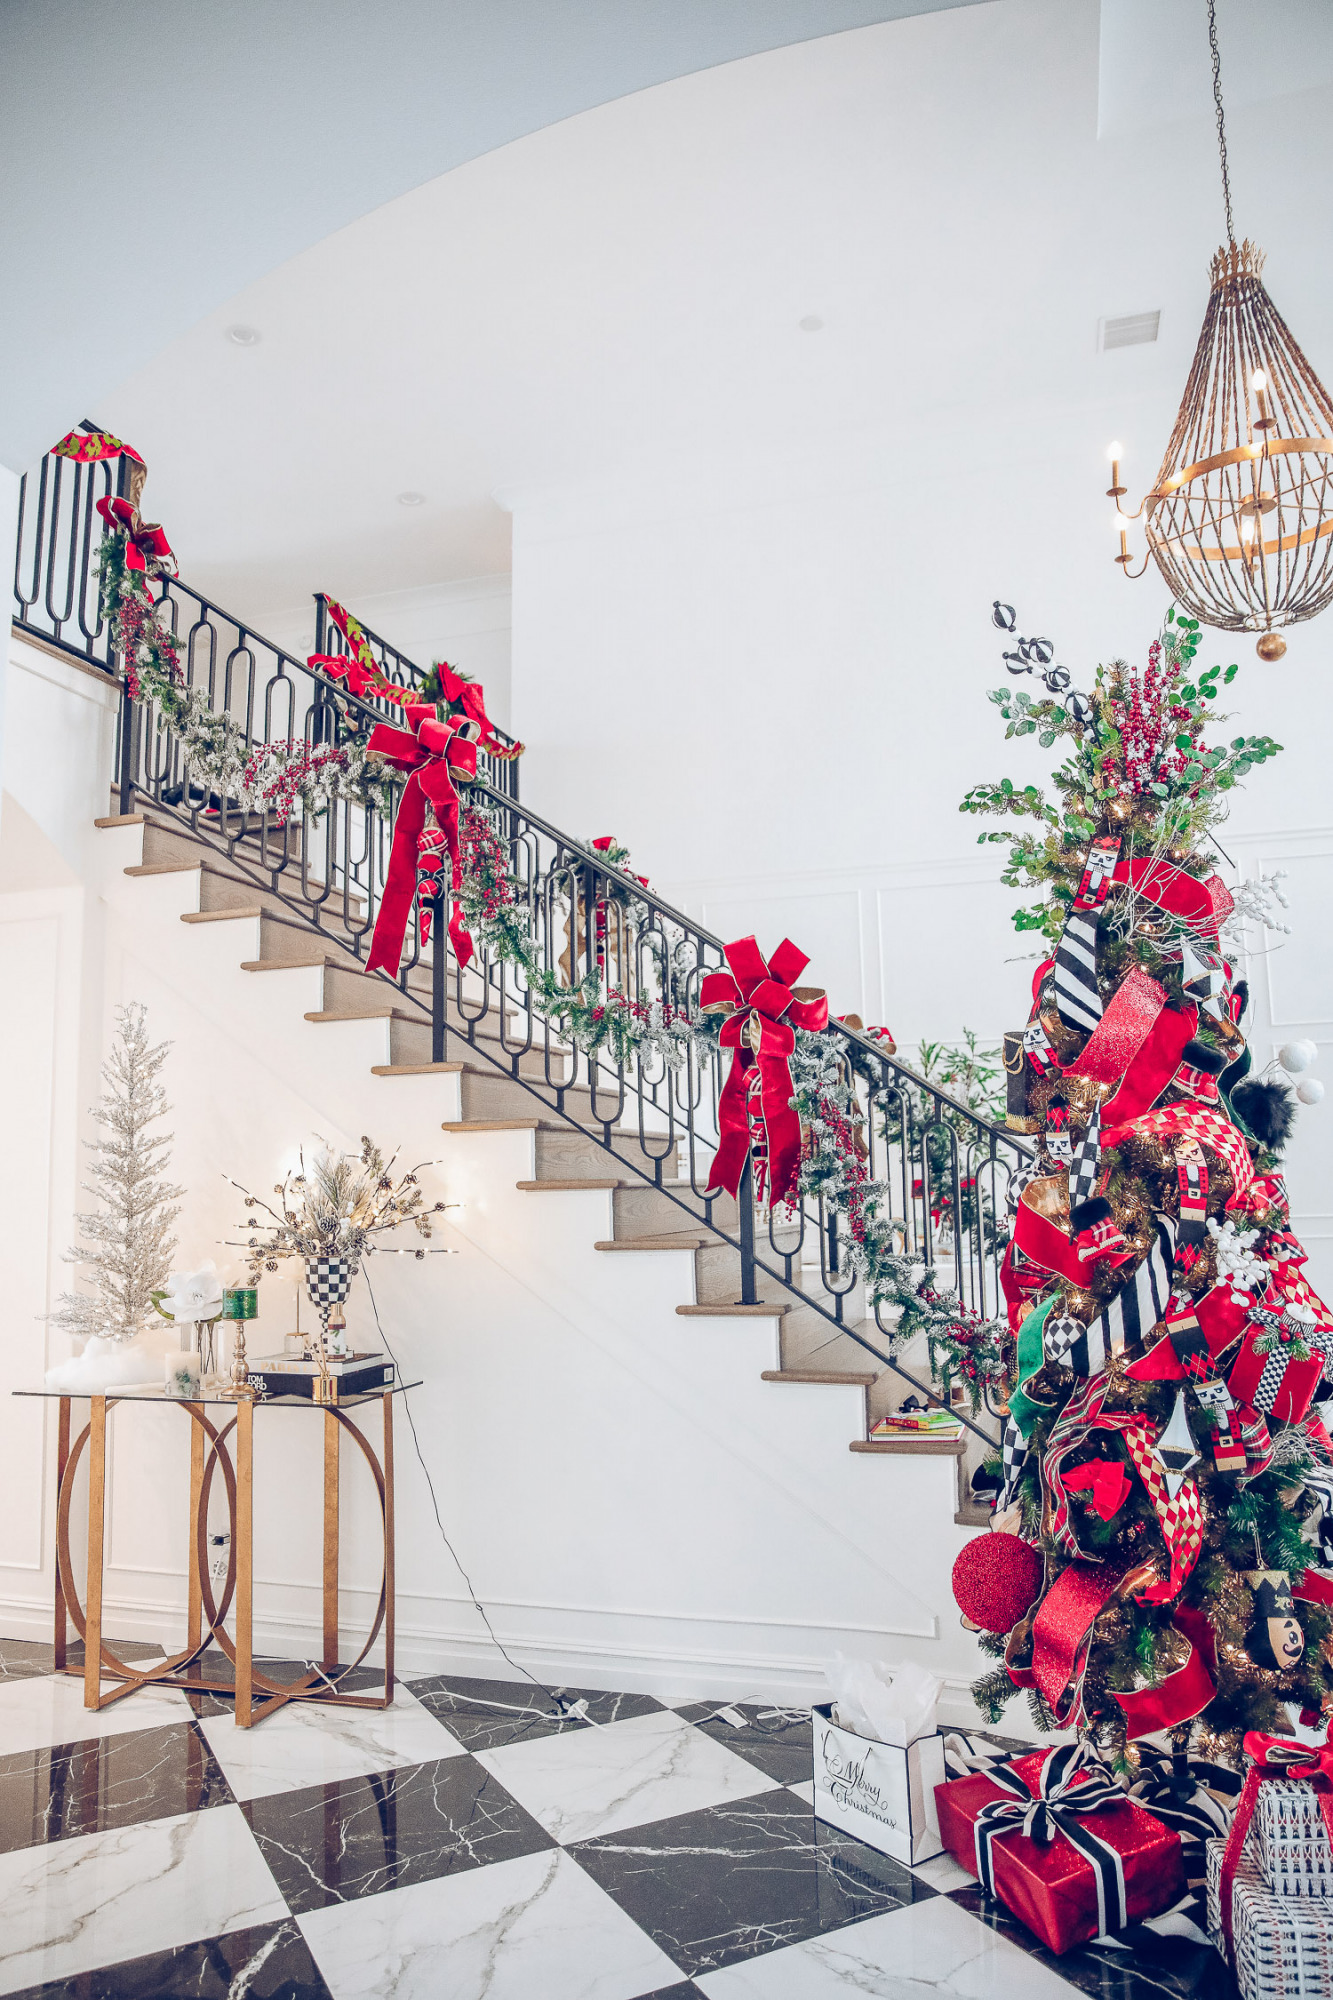 Christmas outdoor decorations home depot, emily gemma home, christmas wreaths on gates with bow, blow up nutcrackers, |Holiday Home Decor by popular US life and style blog, The Sweetest Thing: image of a entry way decorated with wreaths, holiday bows, faux garland, and a nutcracker Christmas tree.